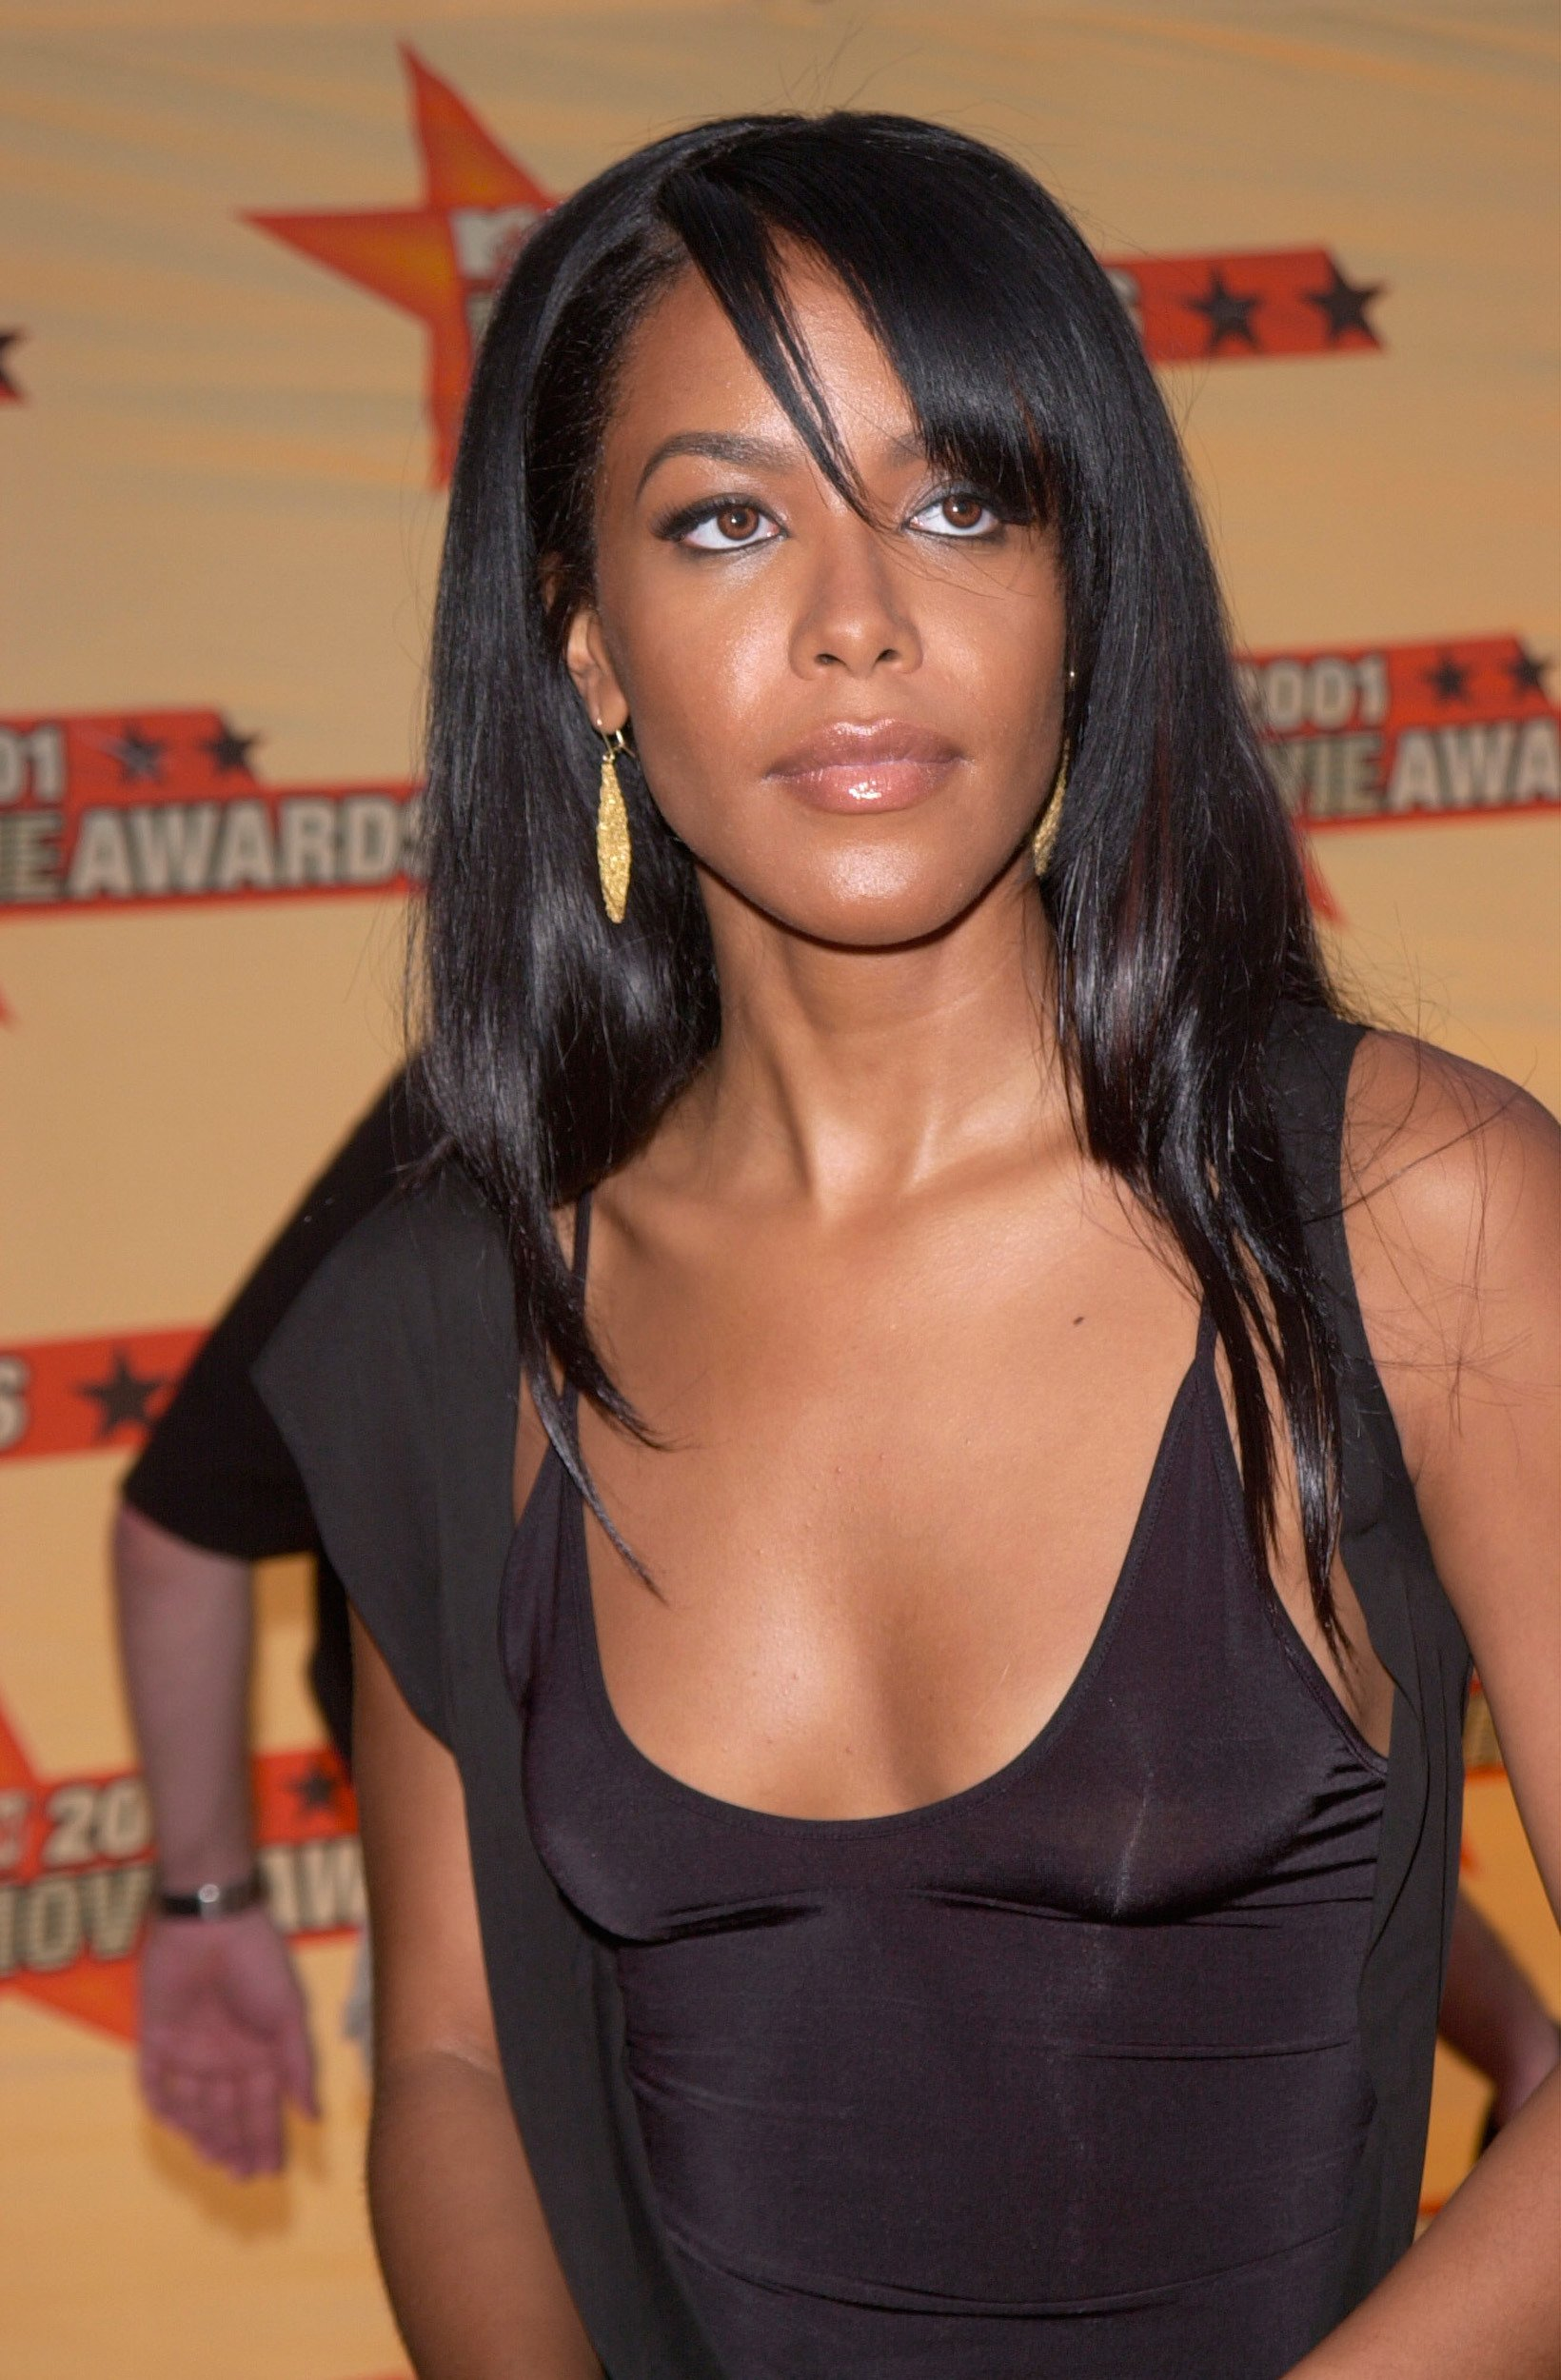 Aaliyah at the MTV Movie Awards red carpet, June 2001. | Photo: Shutterstock